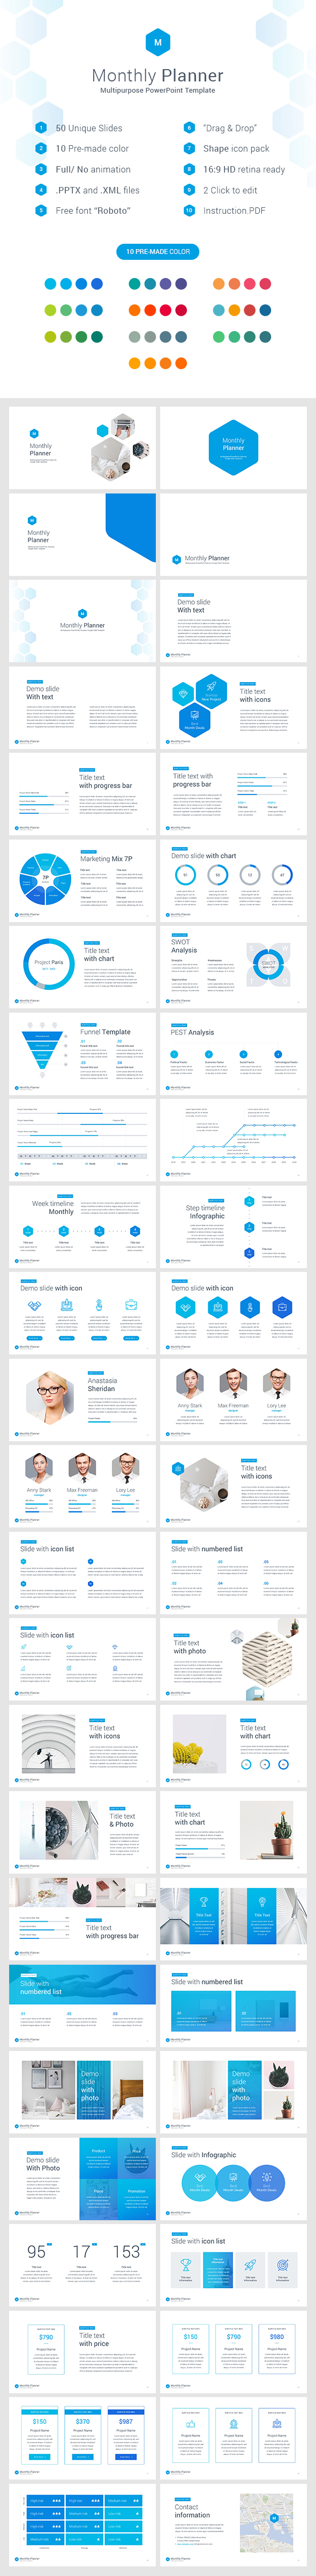 Monthly Planner PowerPoint Template - Business PowerPoint Templates